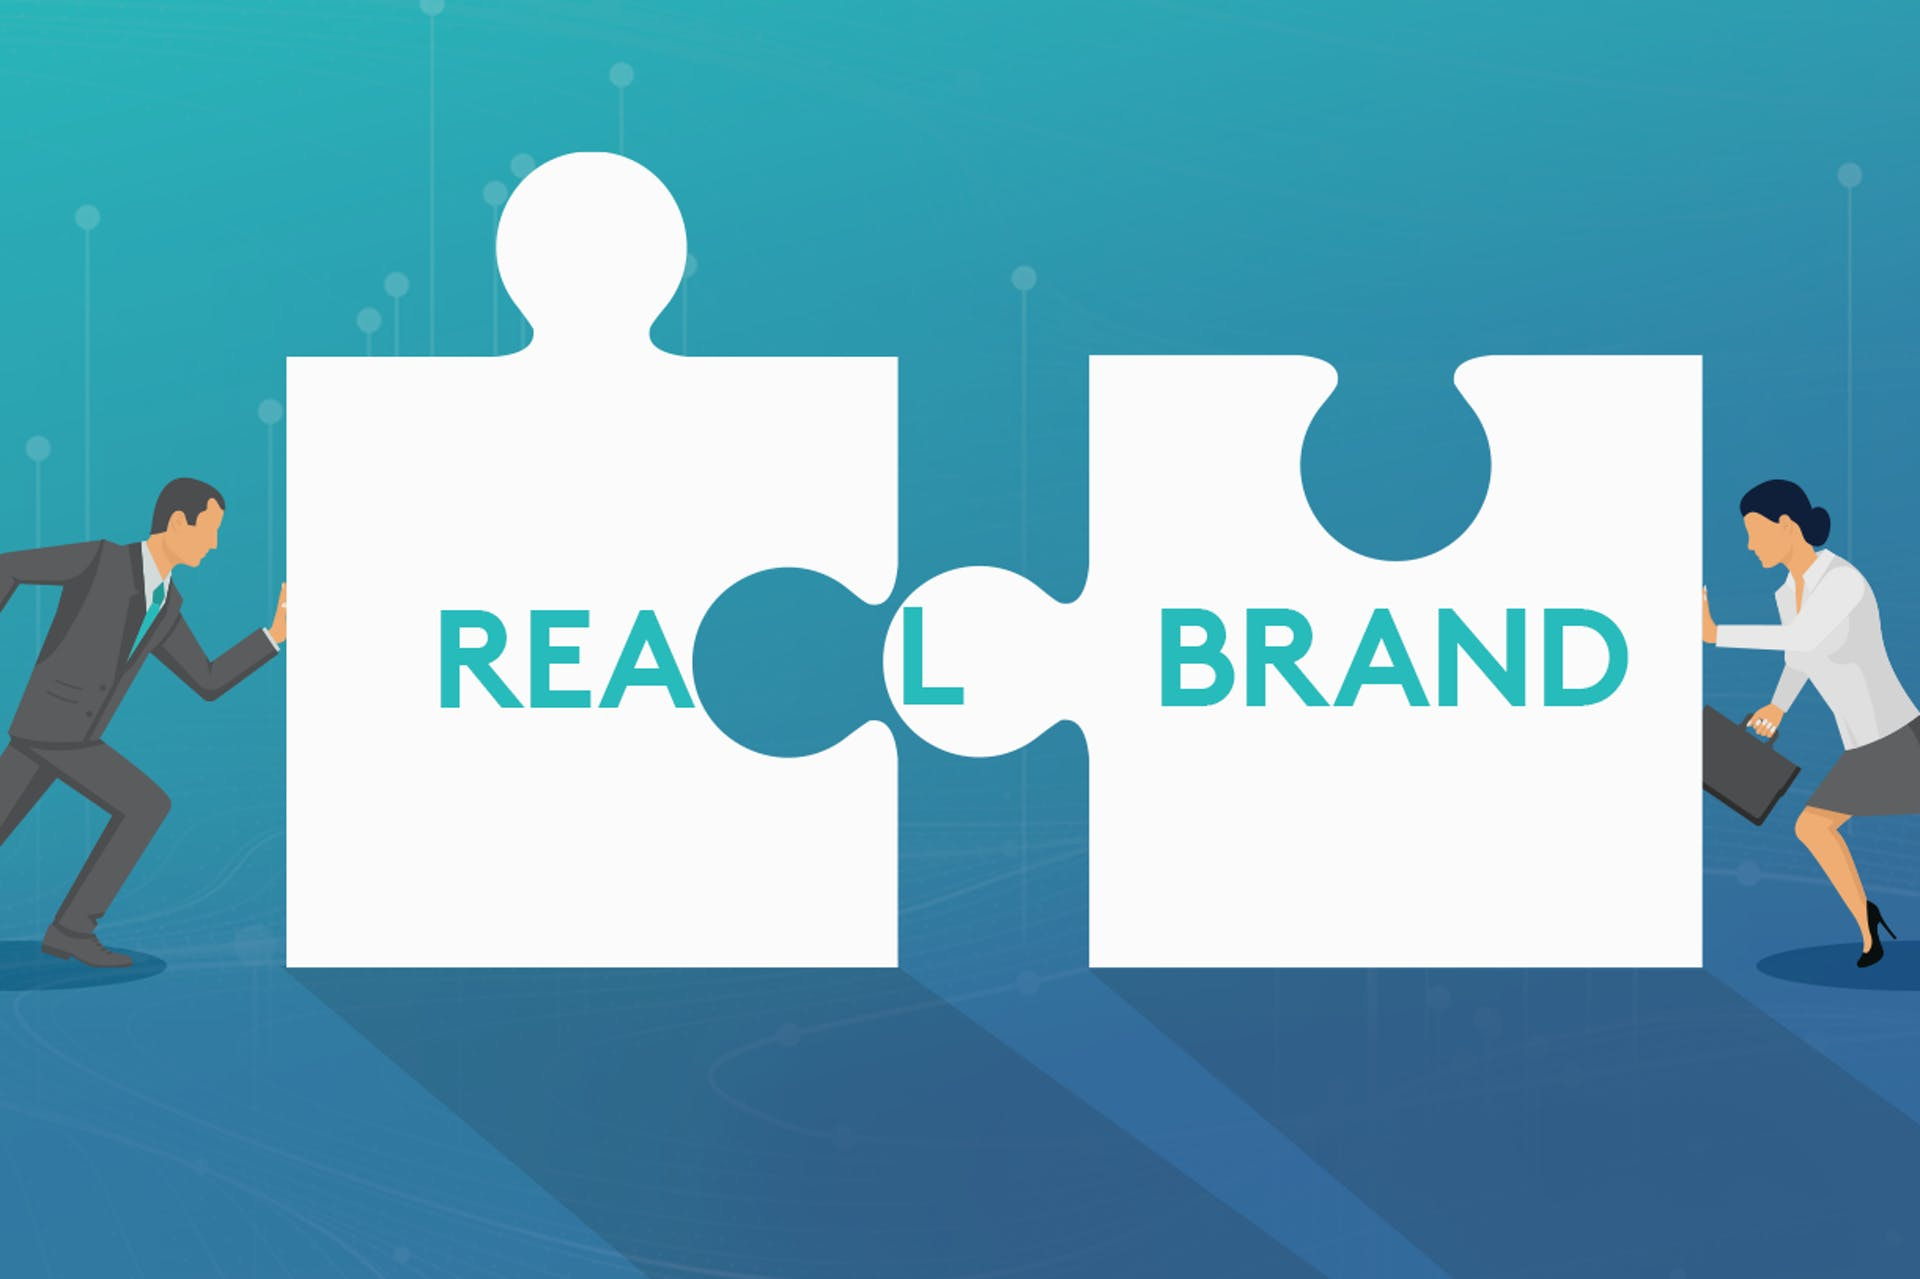 Being on Brand or being real? What's better for social media?